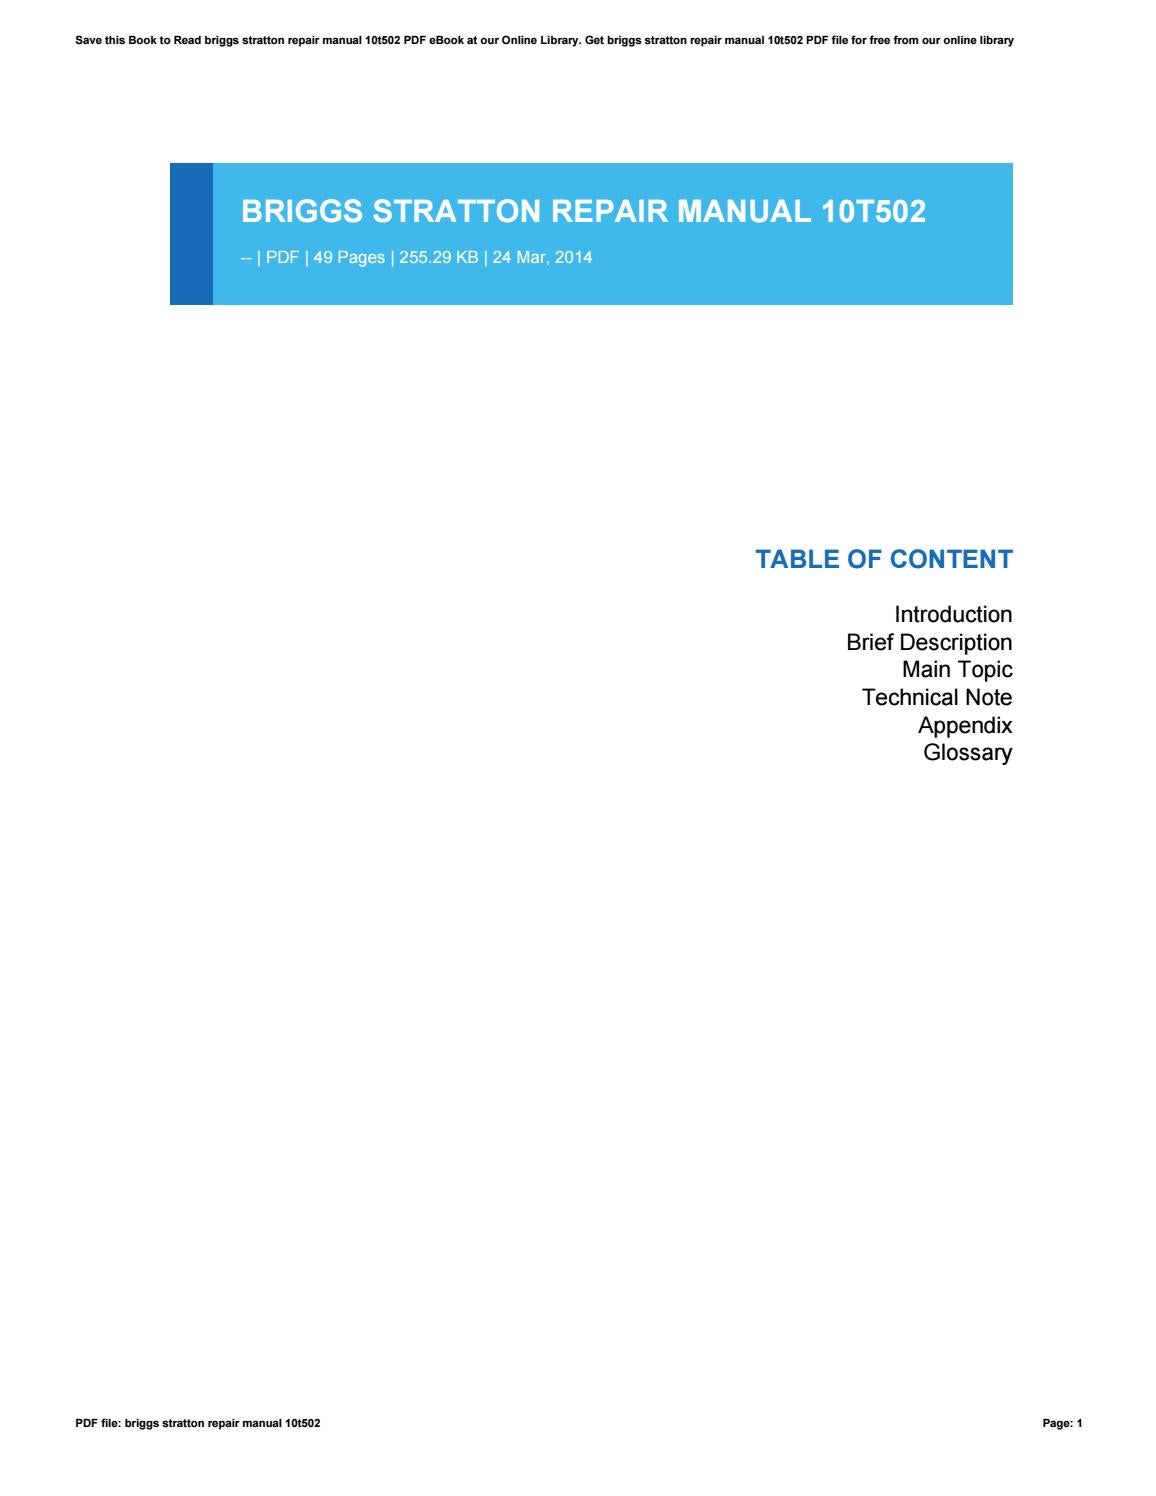 Briggs stratton repair manual 10t502 by mor193 issuu fandeluxe Choice Image